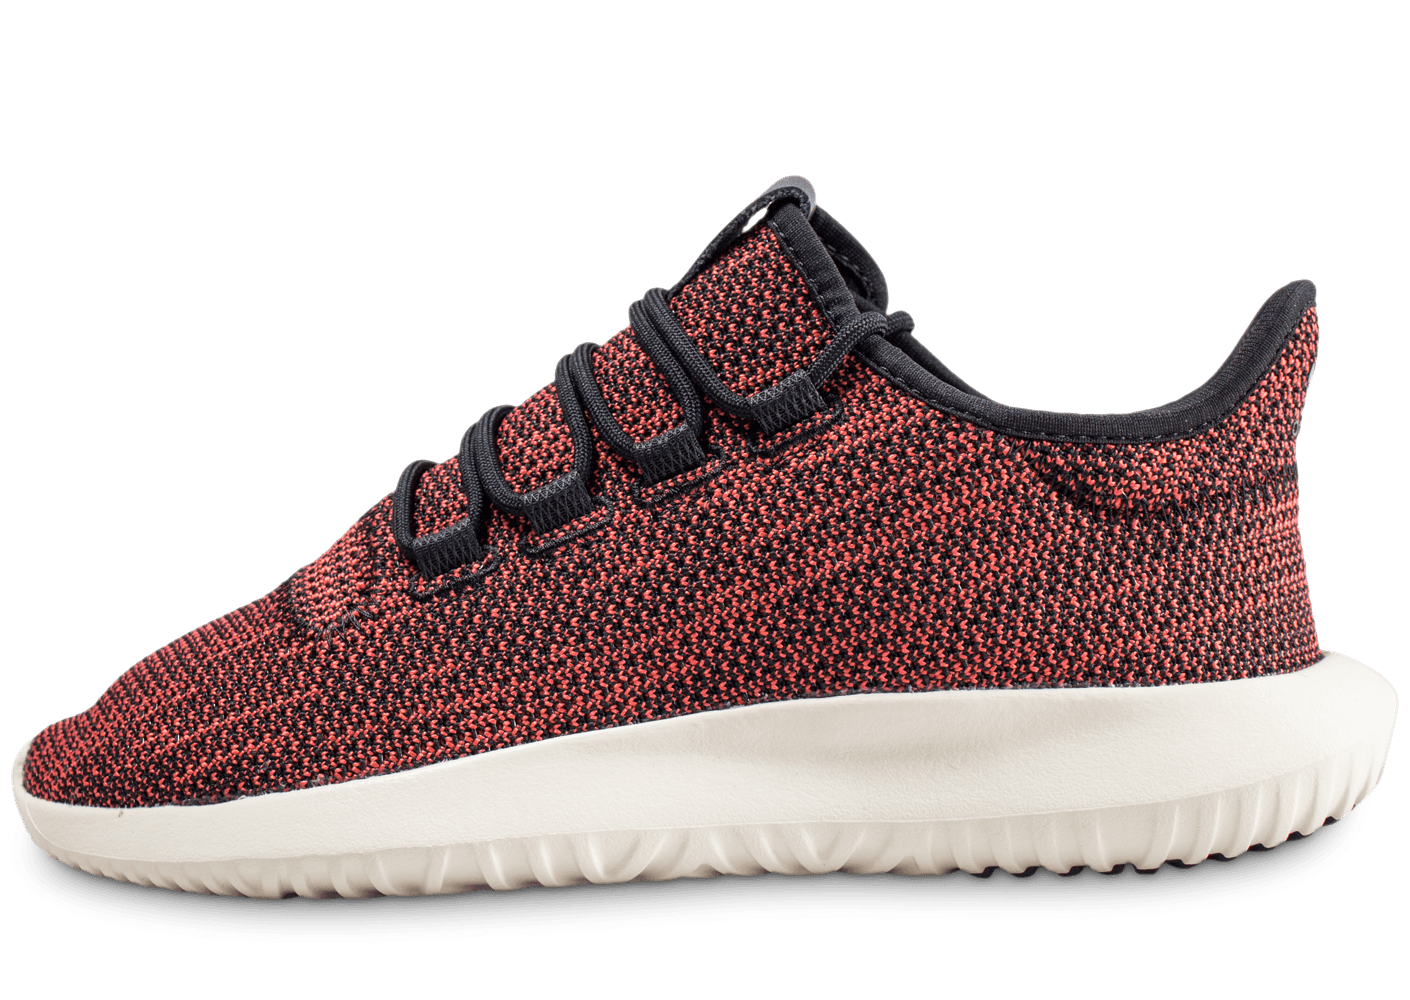 wholesale dealer 043bf 4234f adidas Tubular Shadow rouge - Chaussures Baskets homme - Chausport